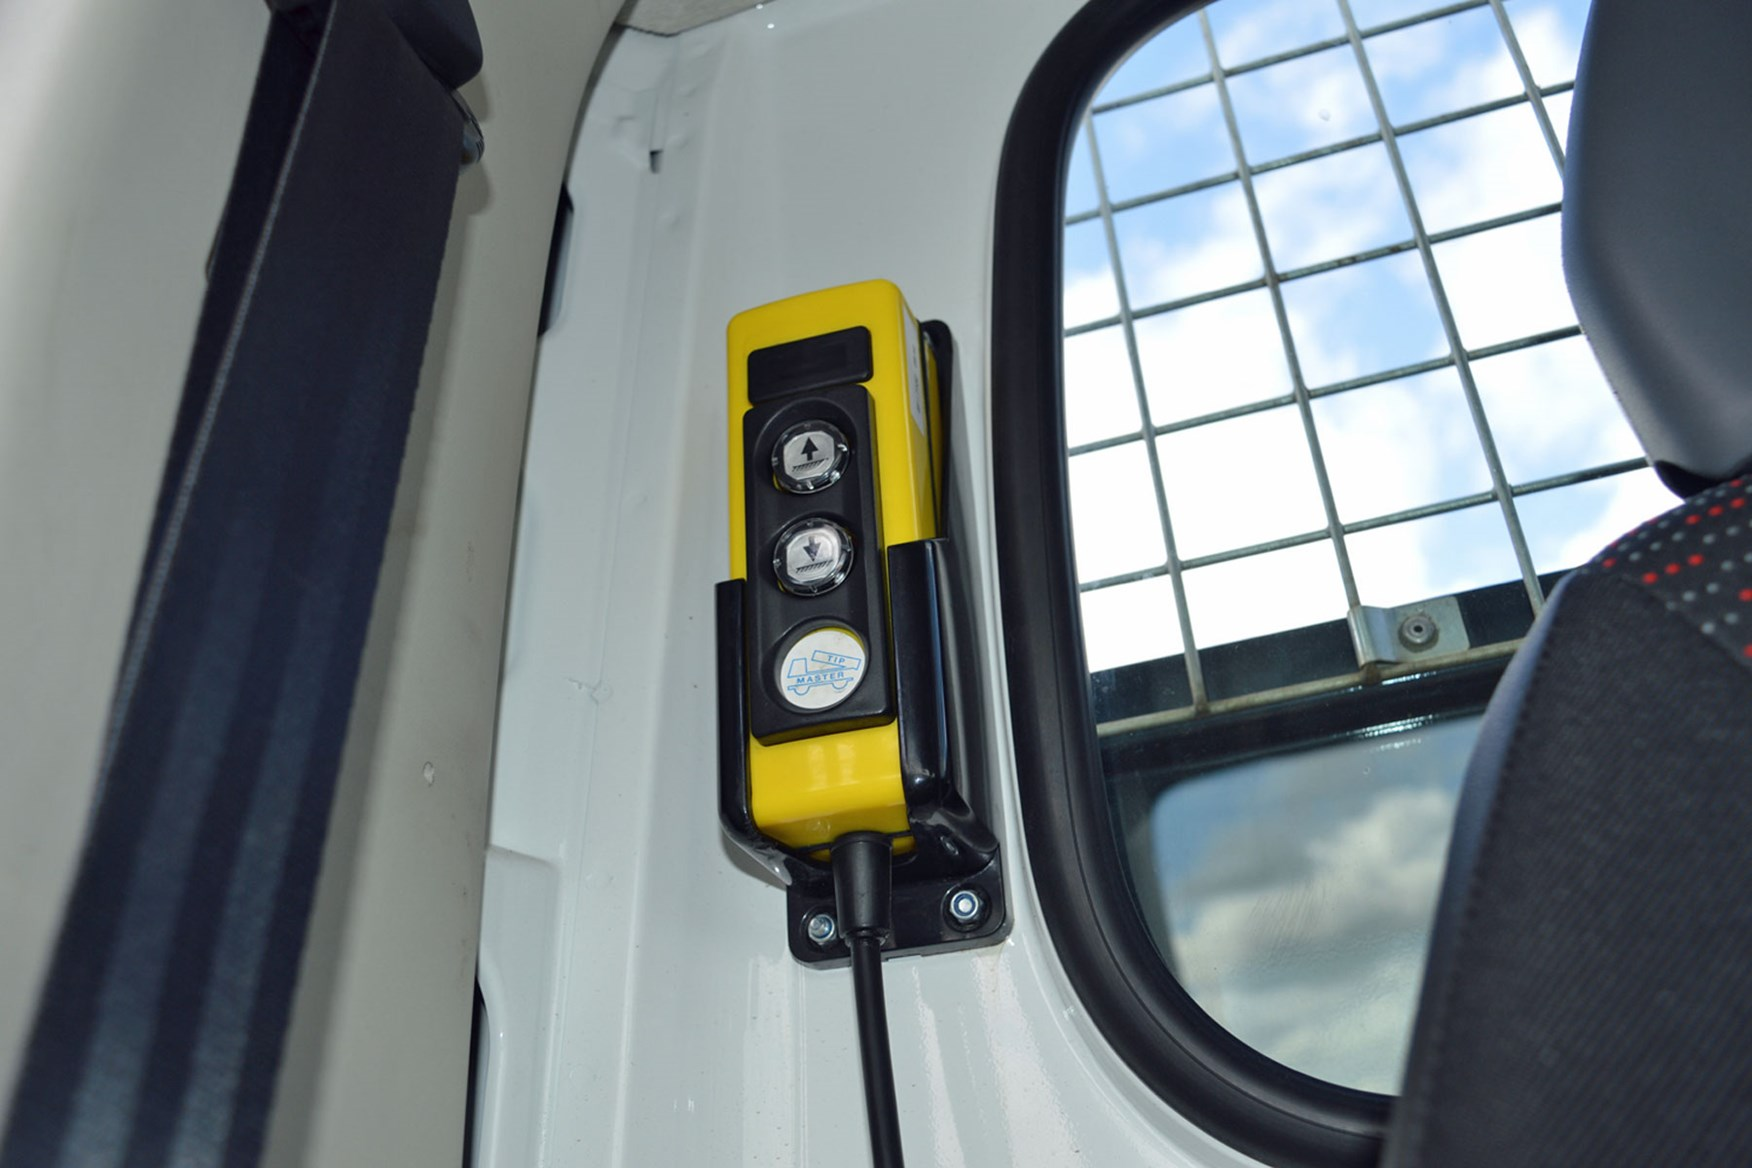 Citroen Relay 2.2 HDi Tipper review - control stored in cab